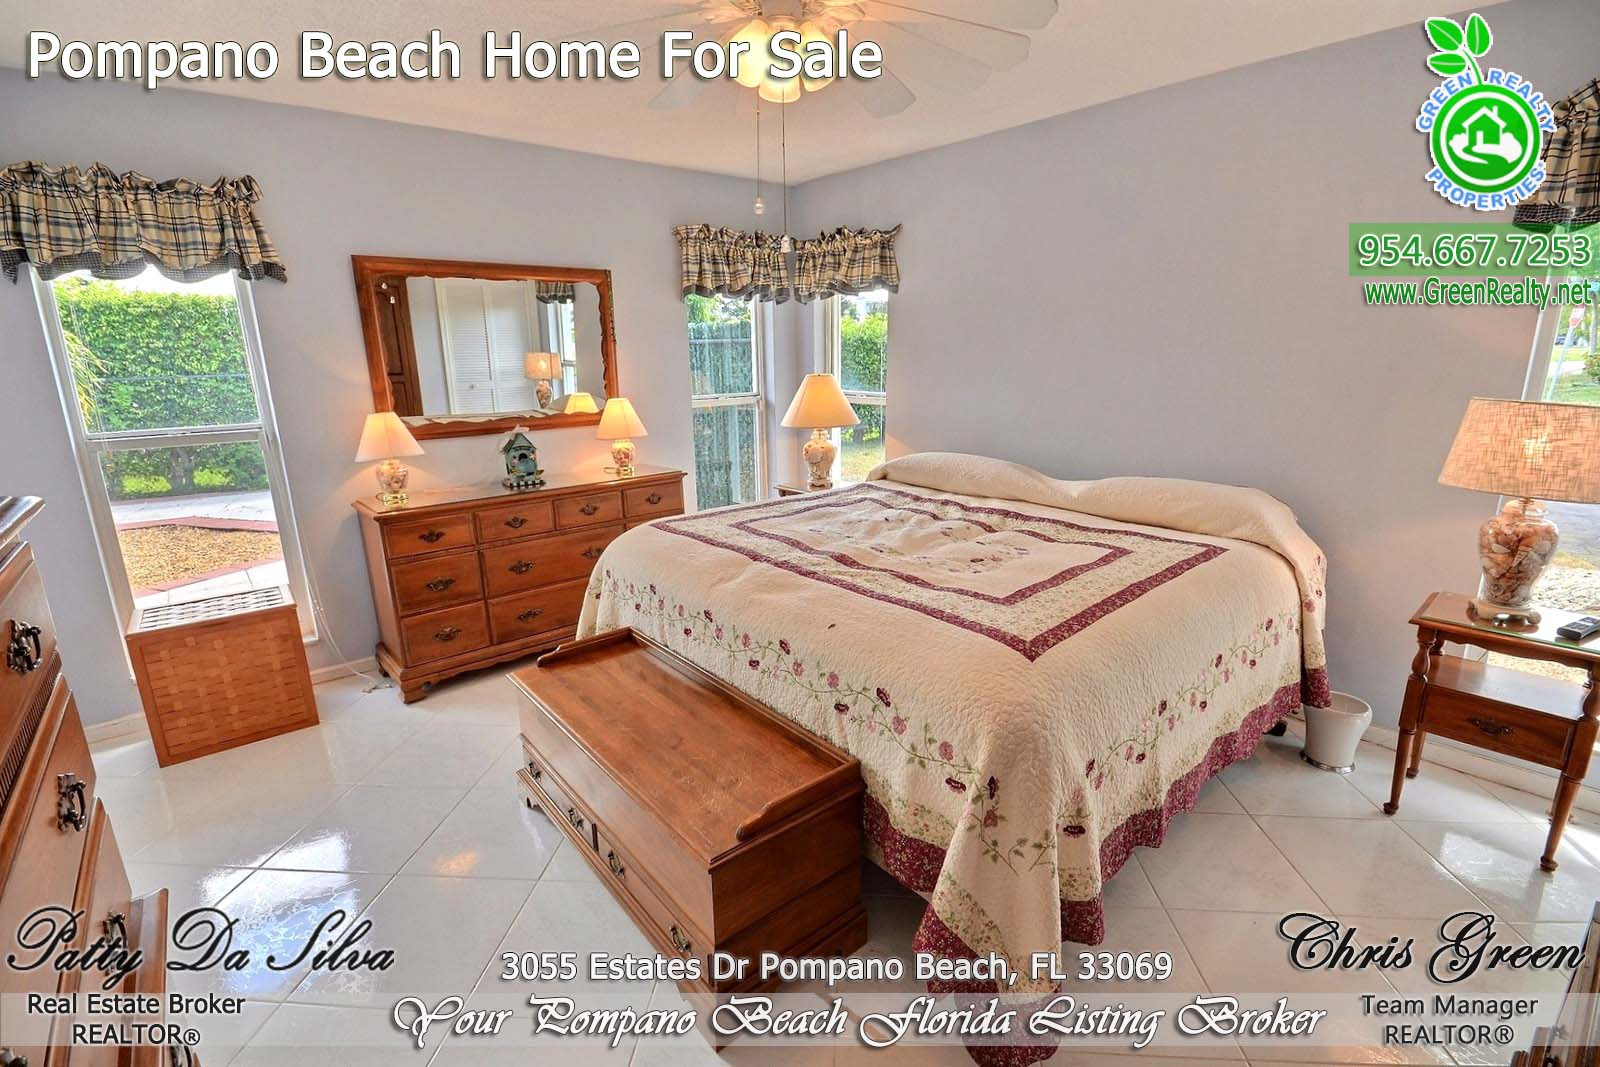 23 Real Estate For Sale in Pompano Beach (5)